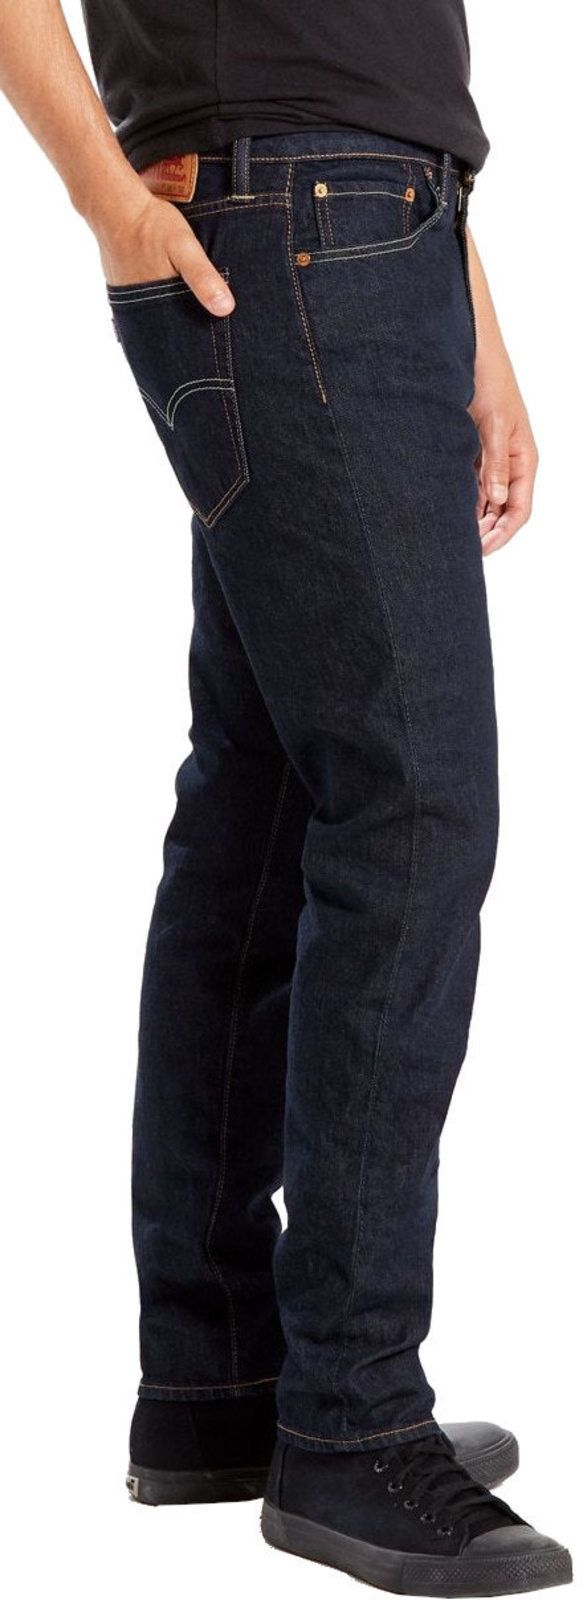 Levi's 512 Slim Taper Fit Denim Jeans Blue